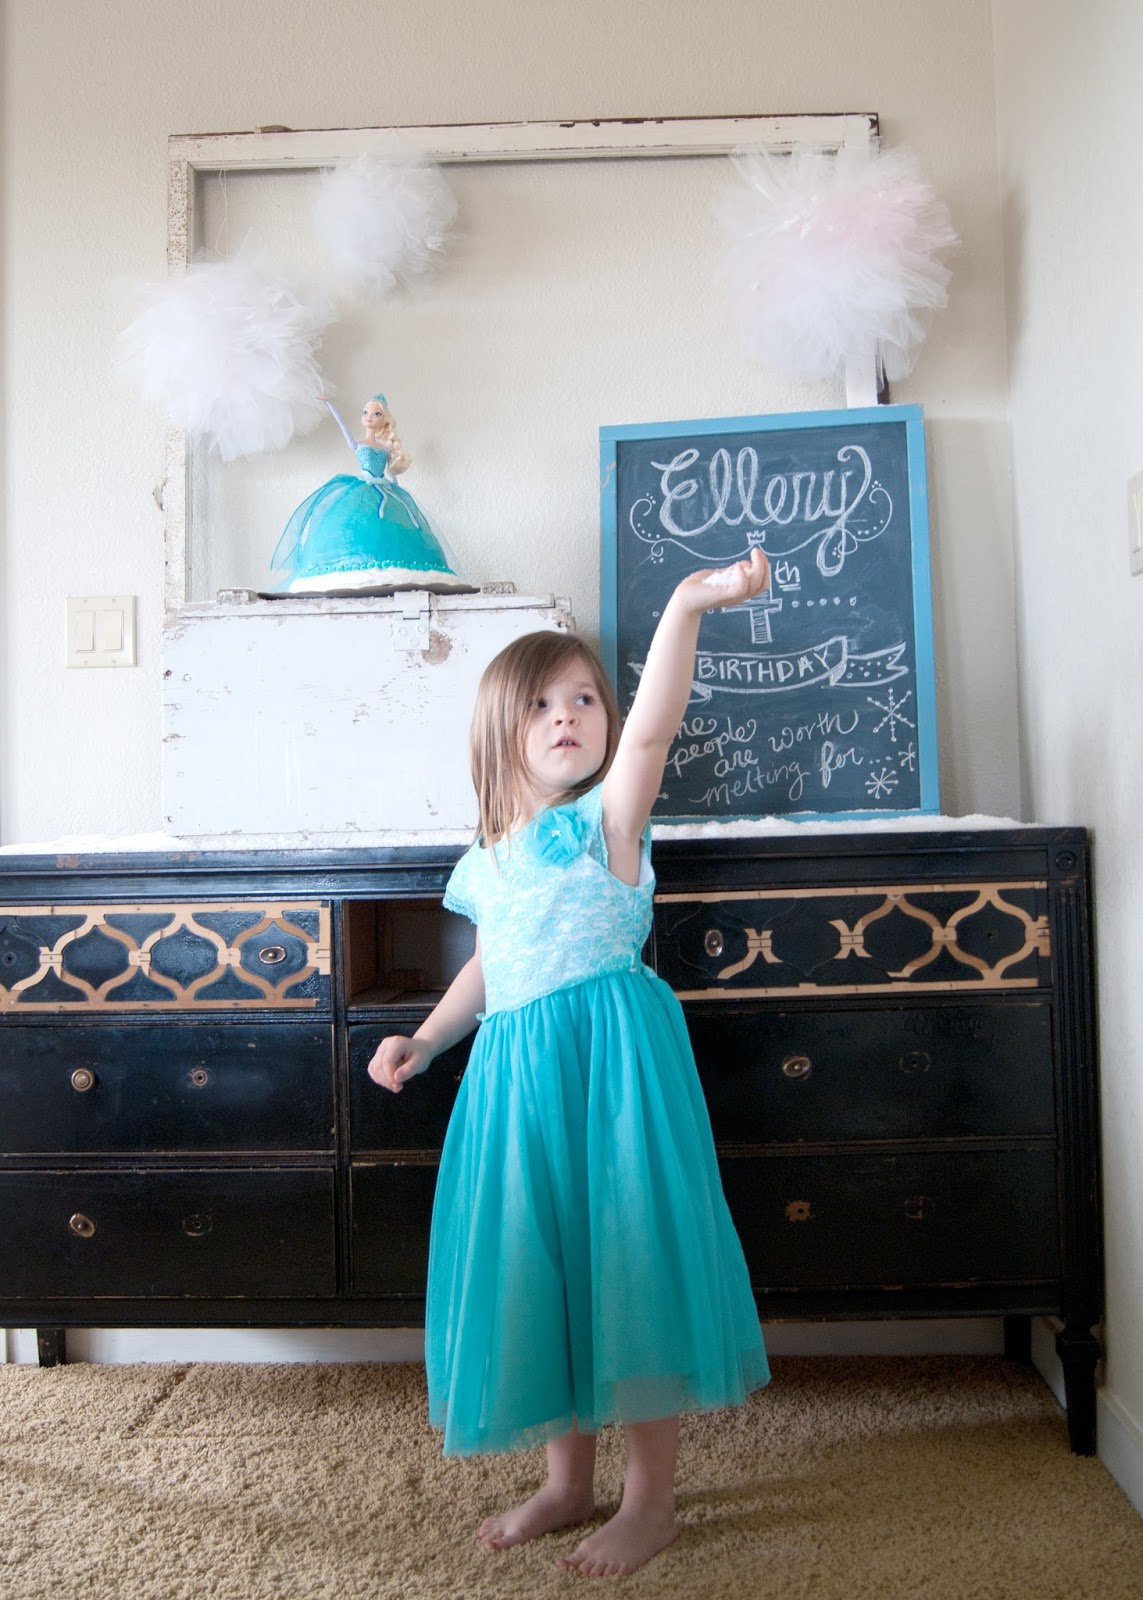 The birthday girl and the party decor - Frozen themed birthday party